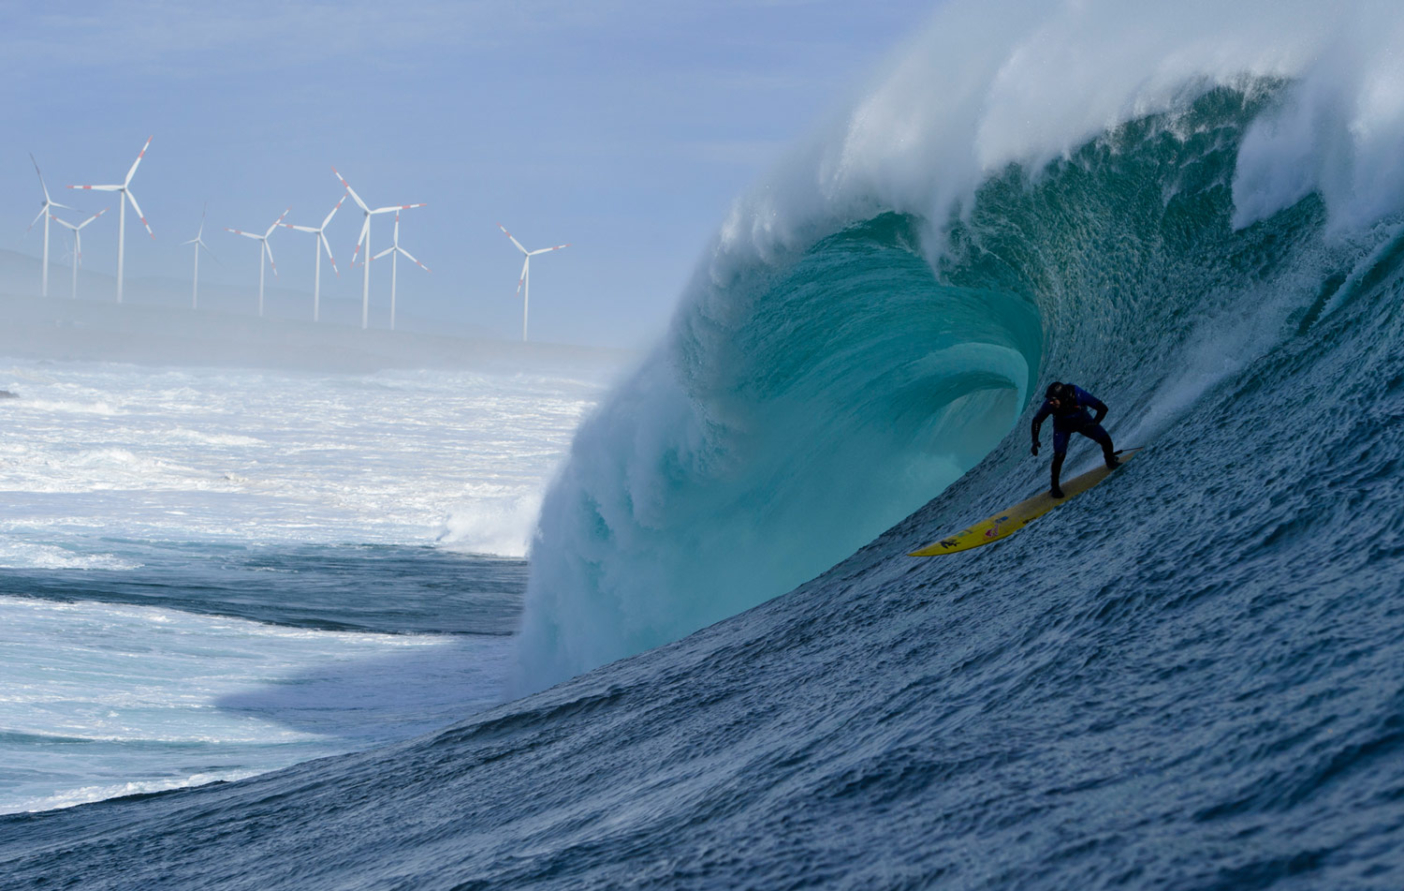 Ramon Navarro charges his own Pacific power source. Photo: Daniel Russo